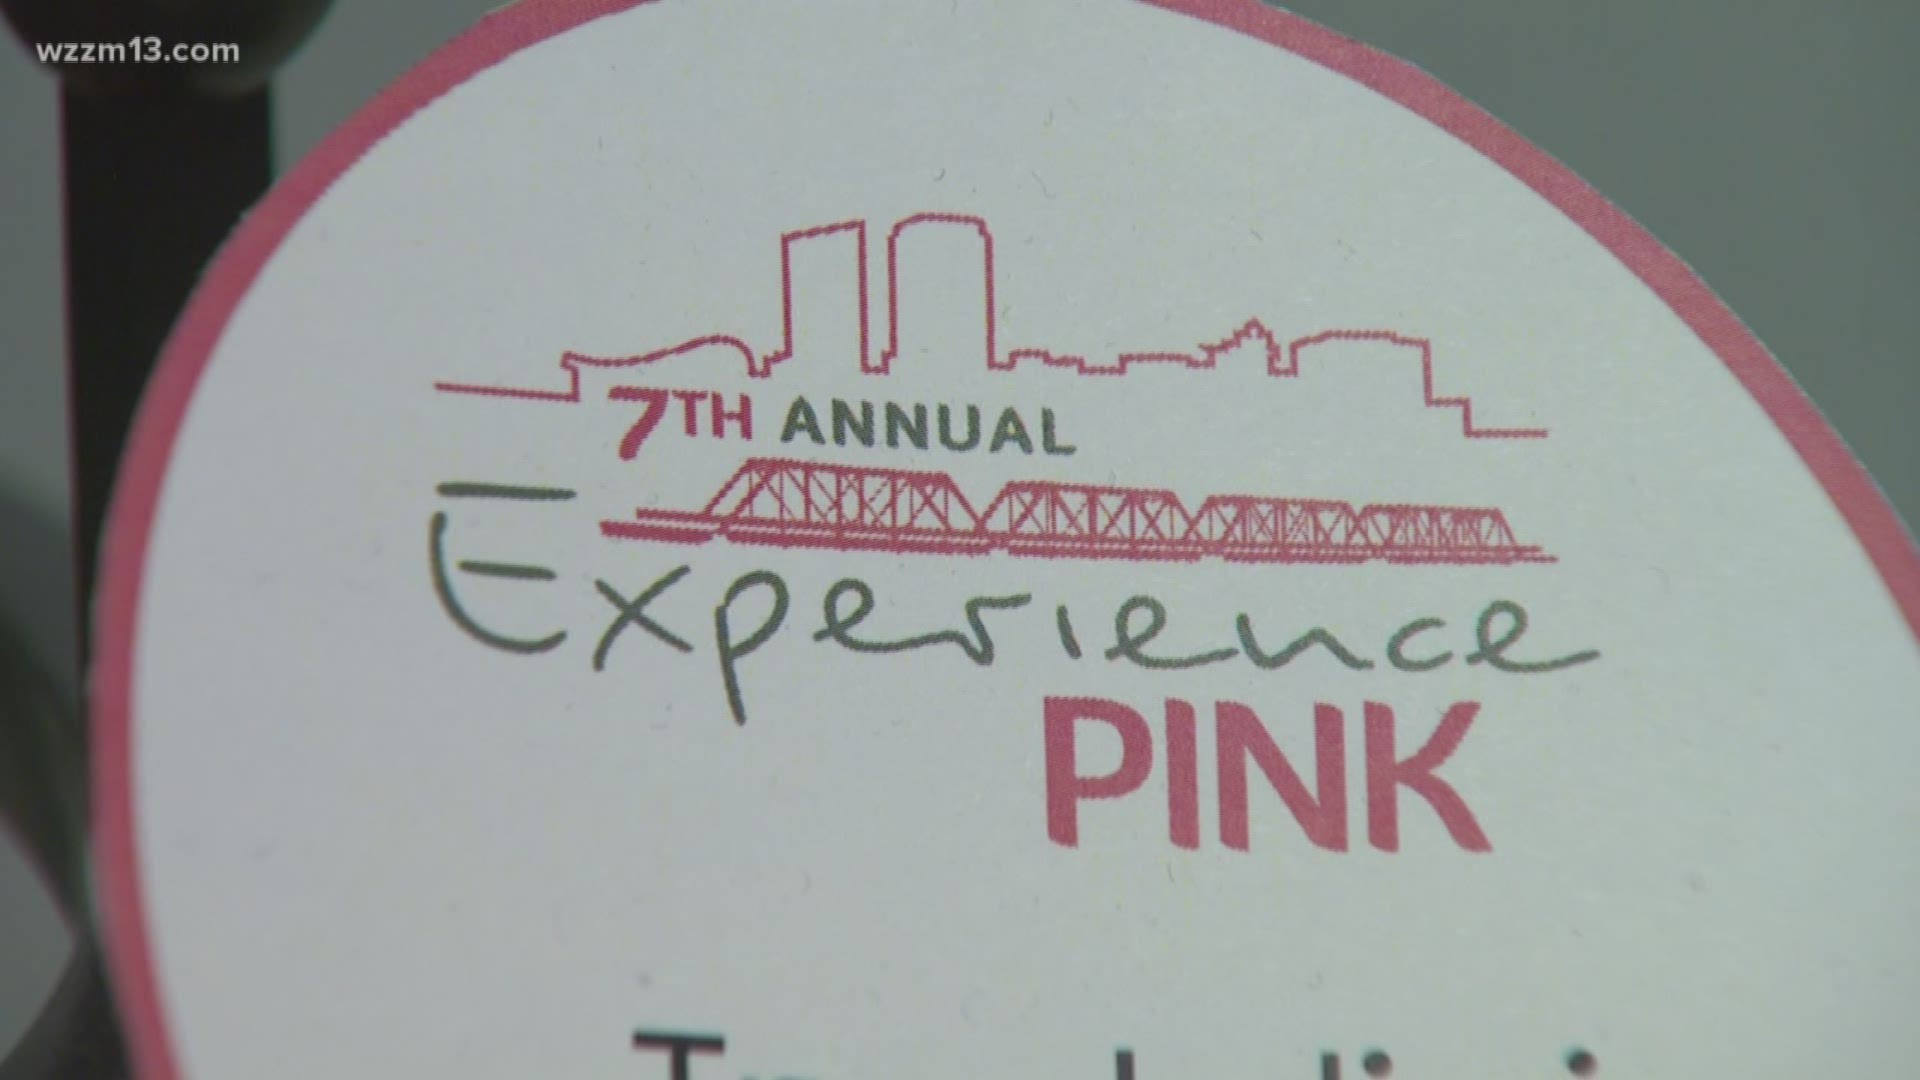 Paint The Town Pink Experience Pink In Grand Rapids All February Long Wzzm13 Com